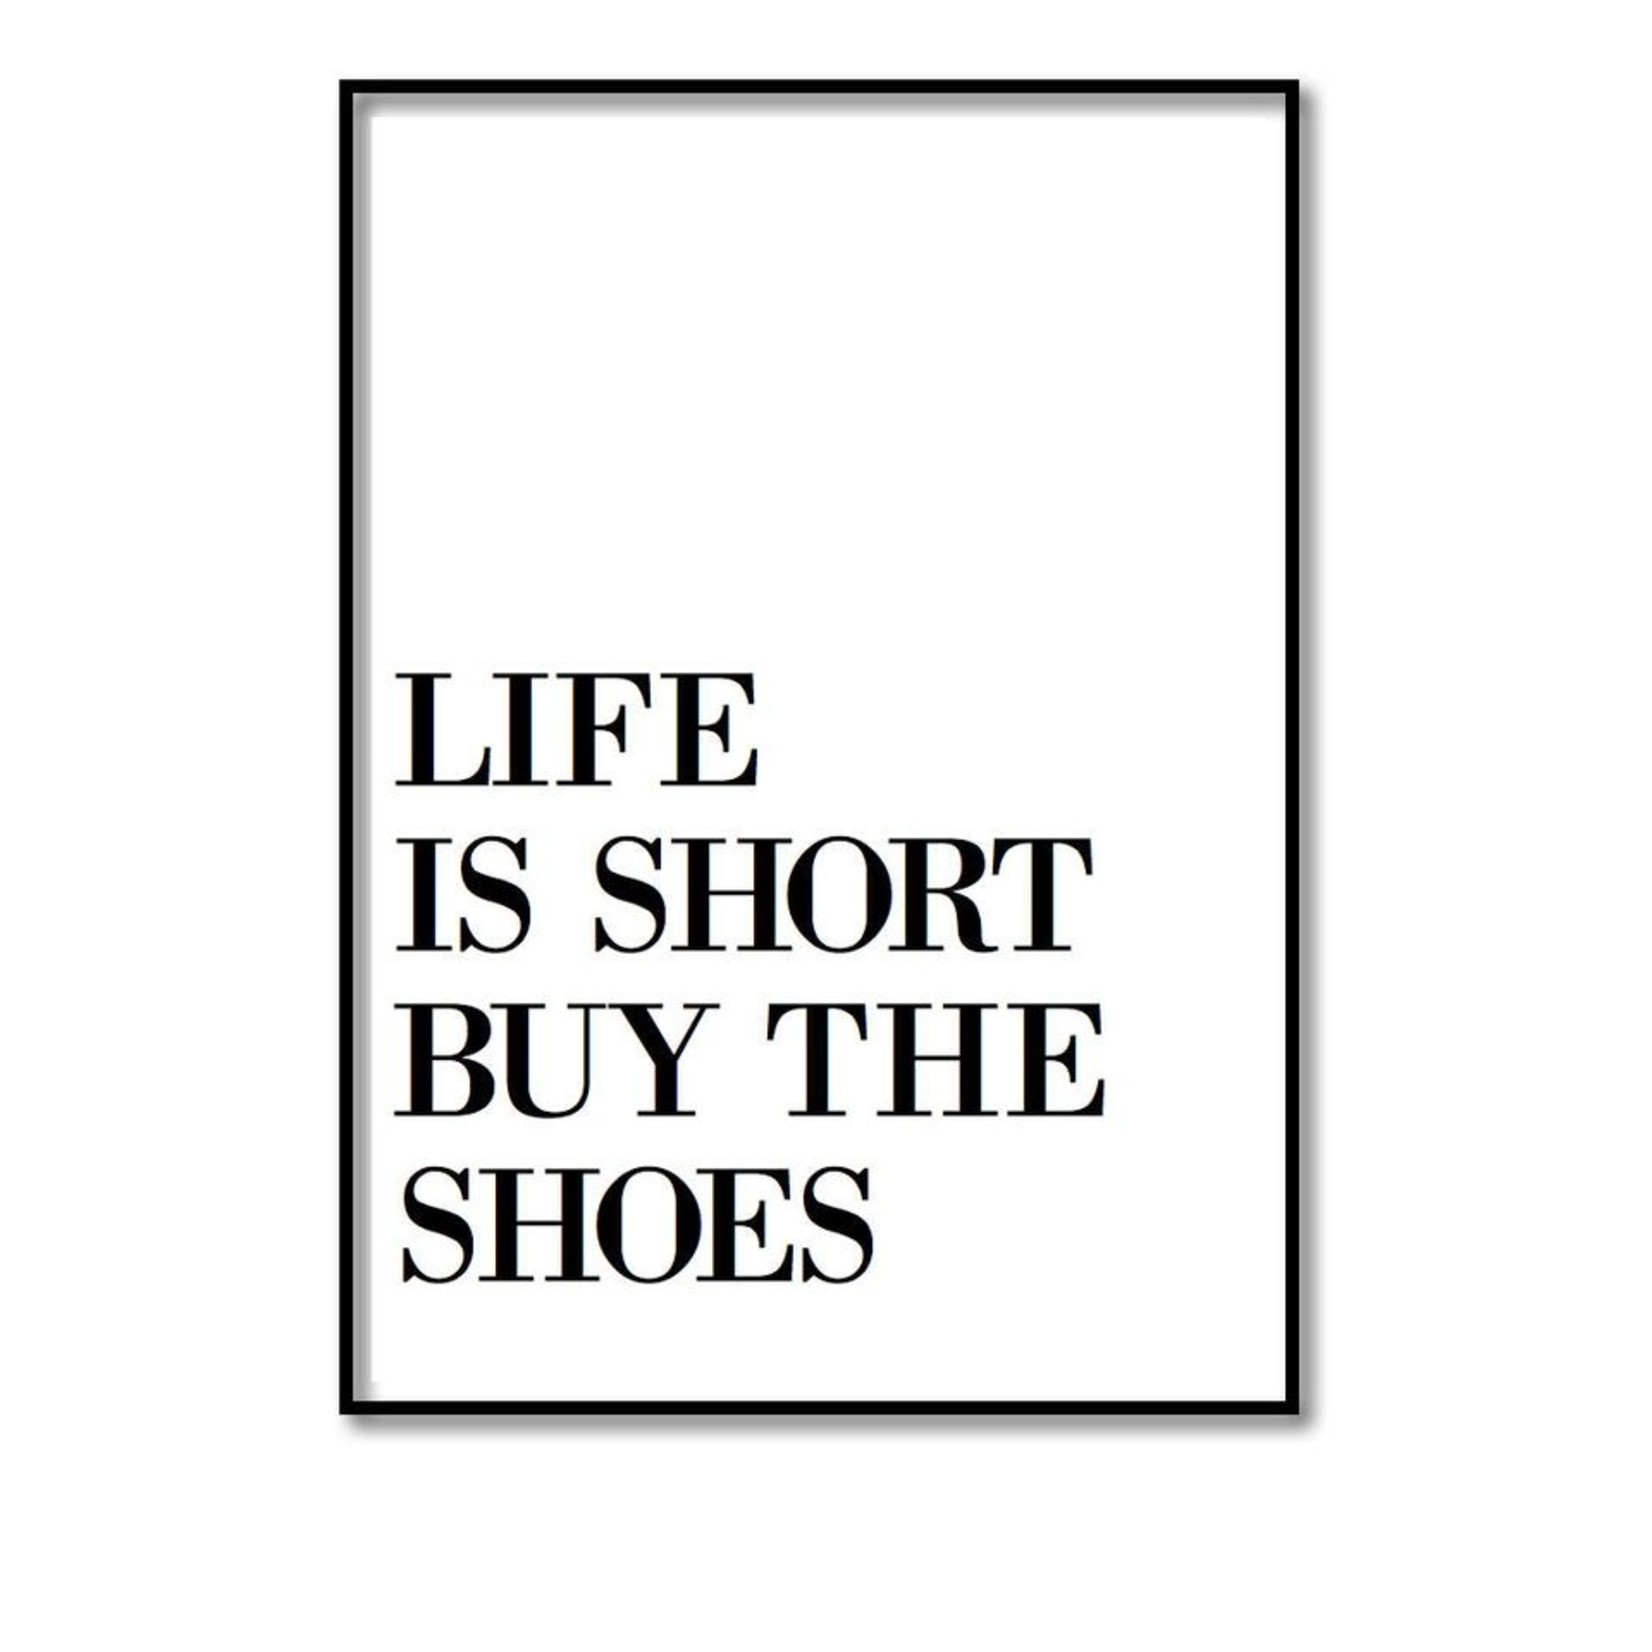 Pixelposter - Life is short buy the shoes (A4)